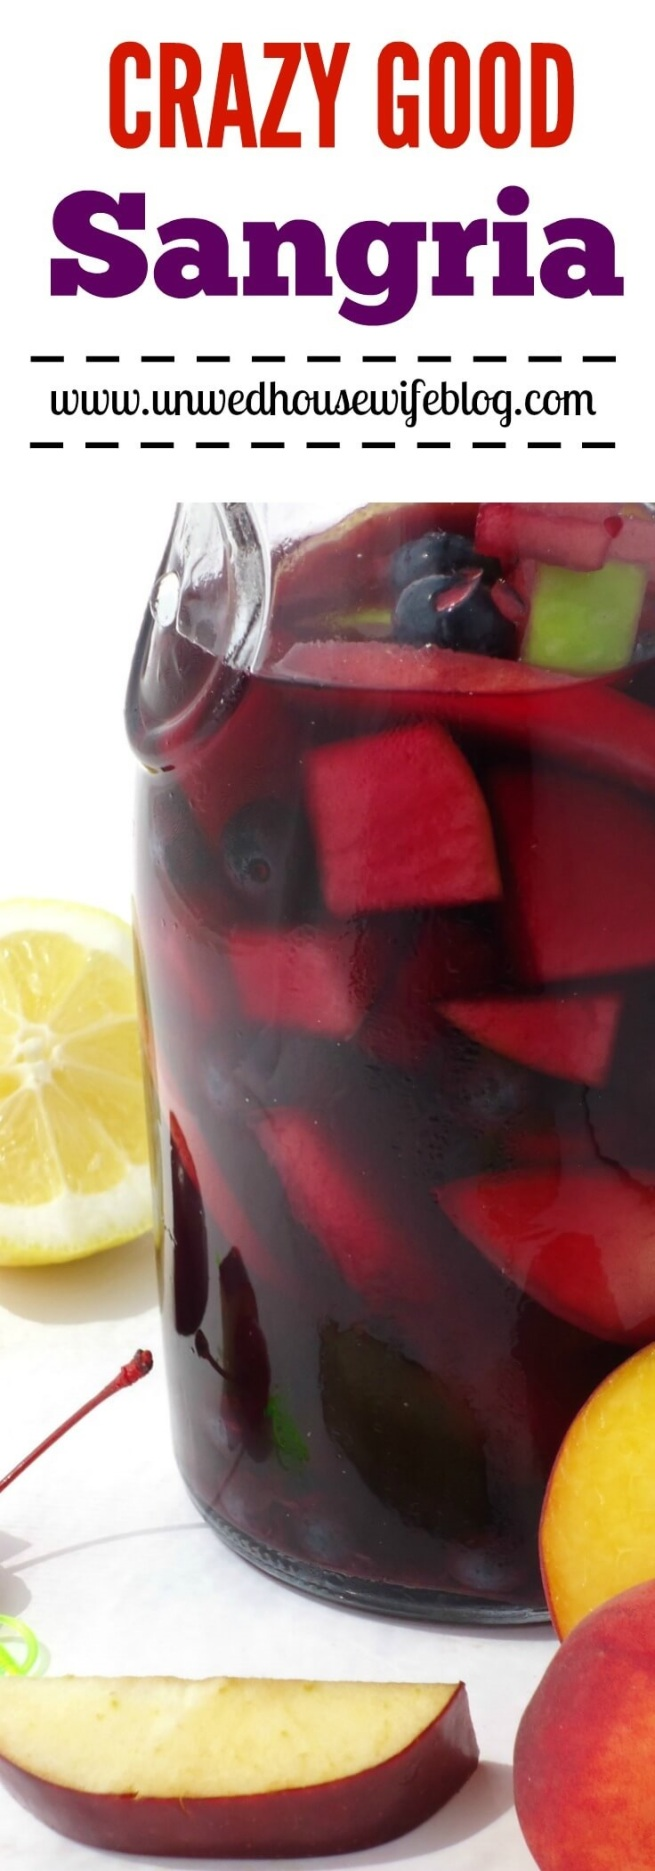 Sangria   Unwed Housewife   This sangria recipe is crazy good! Made with Spanish wine, rum, and fresh fruit, you're going to love this crazy good sangria.